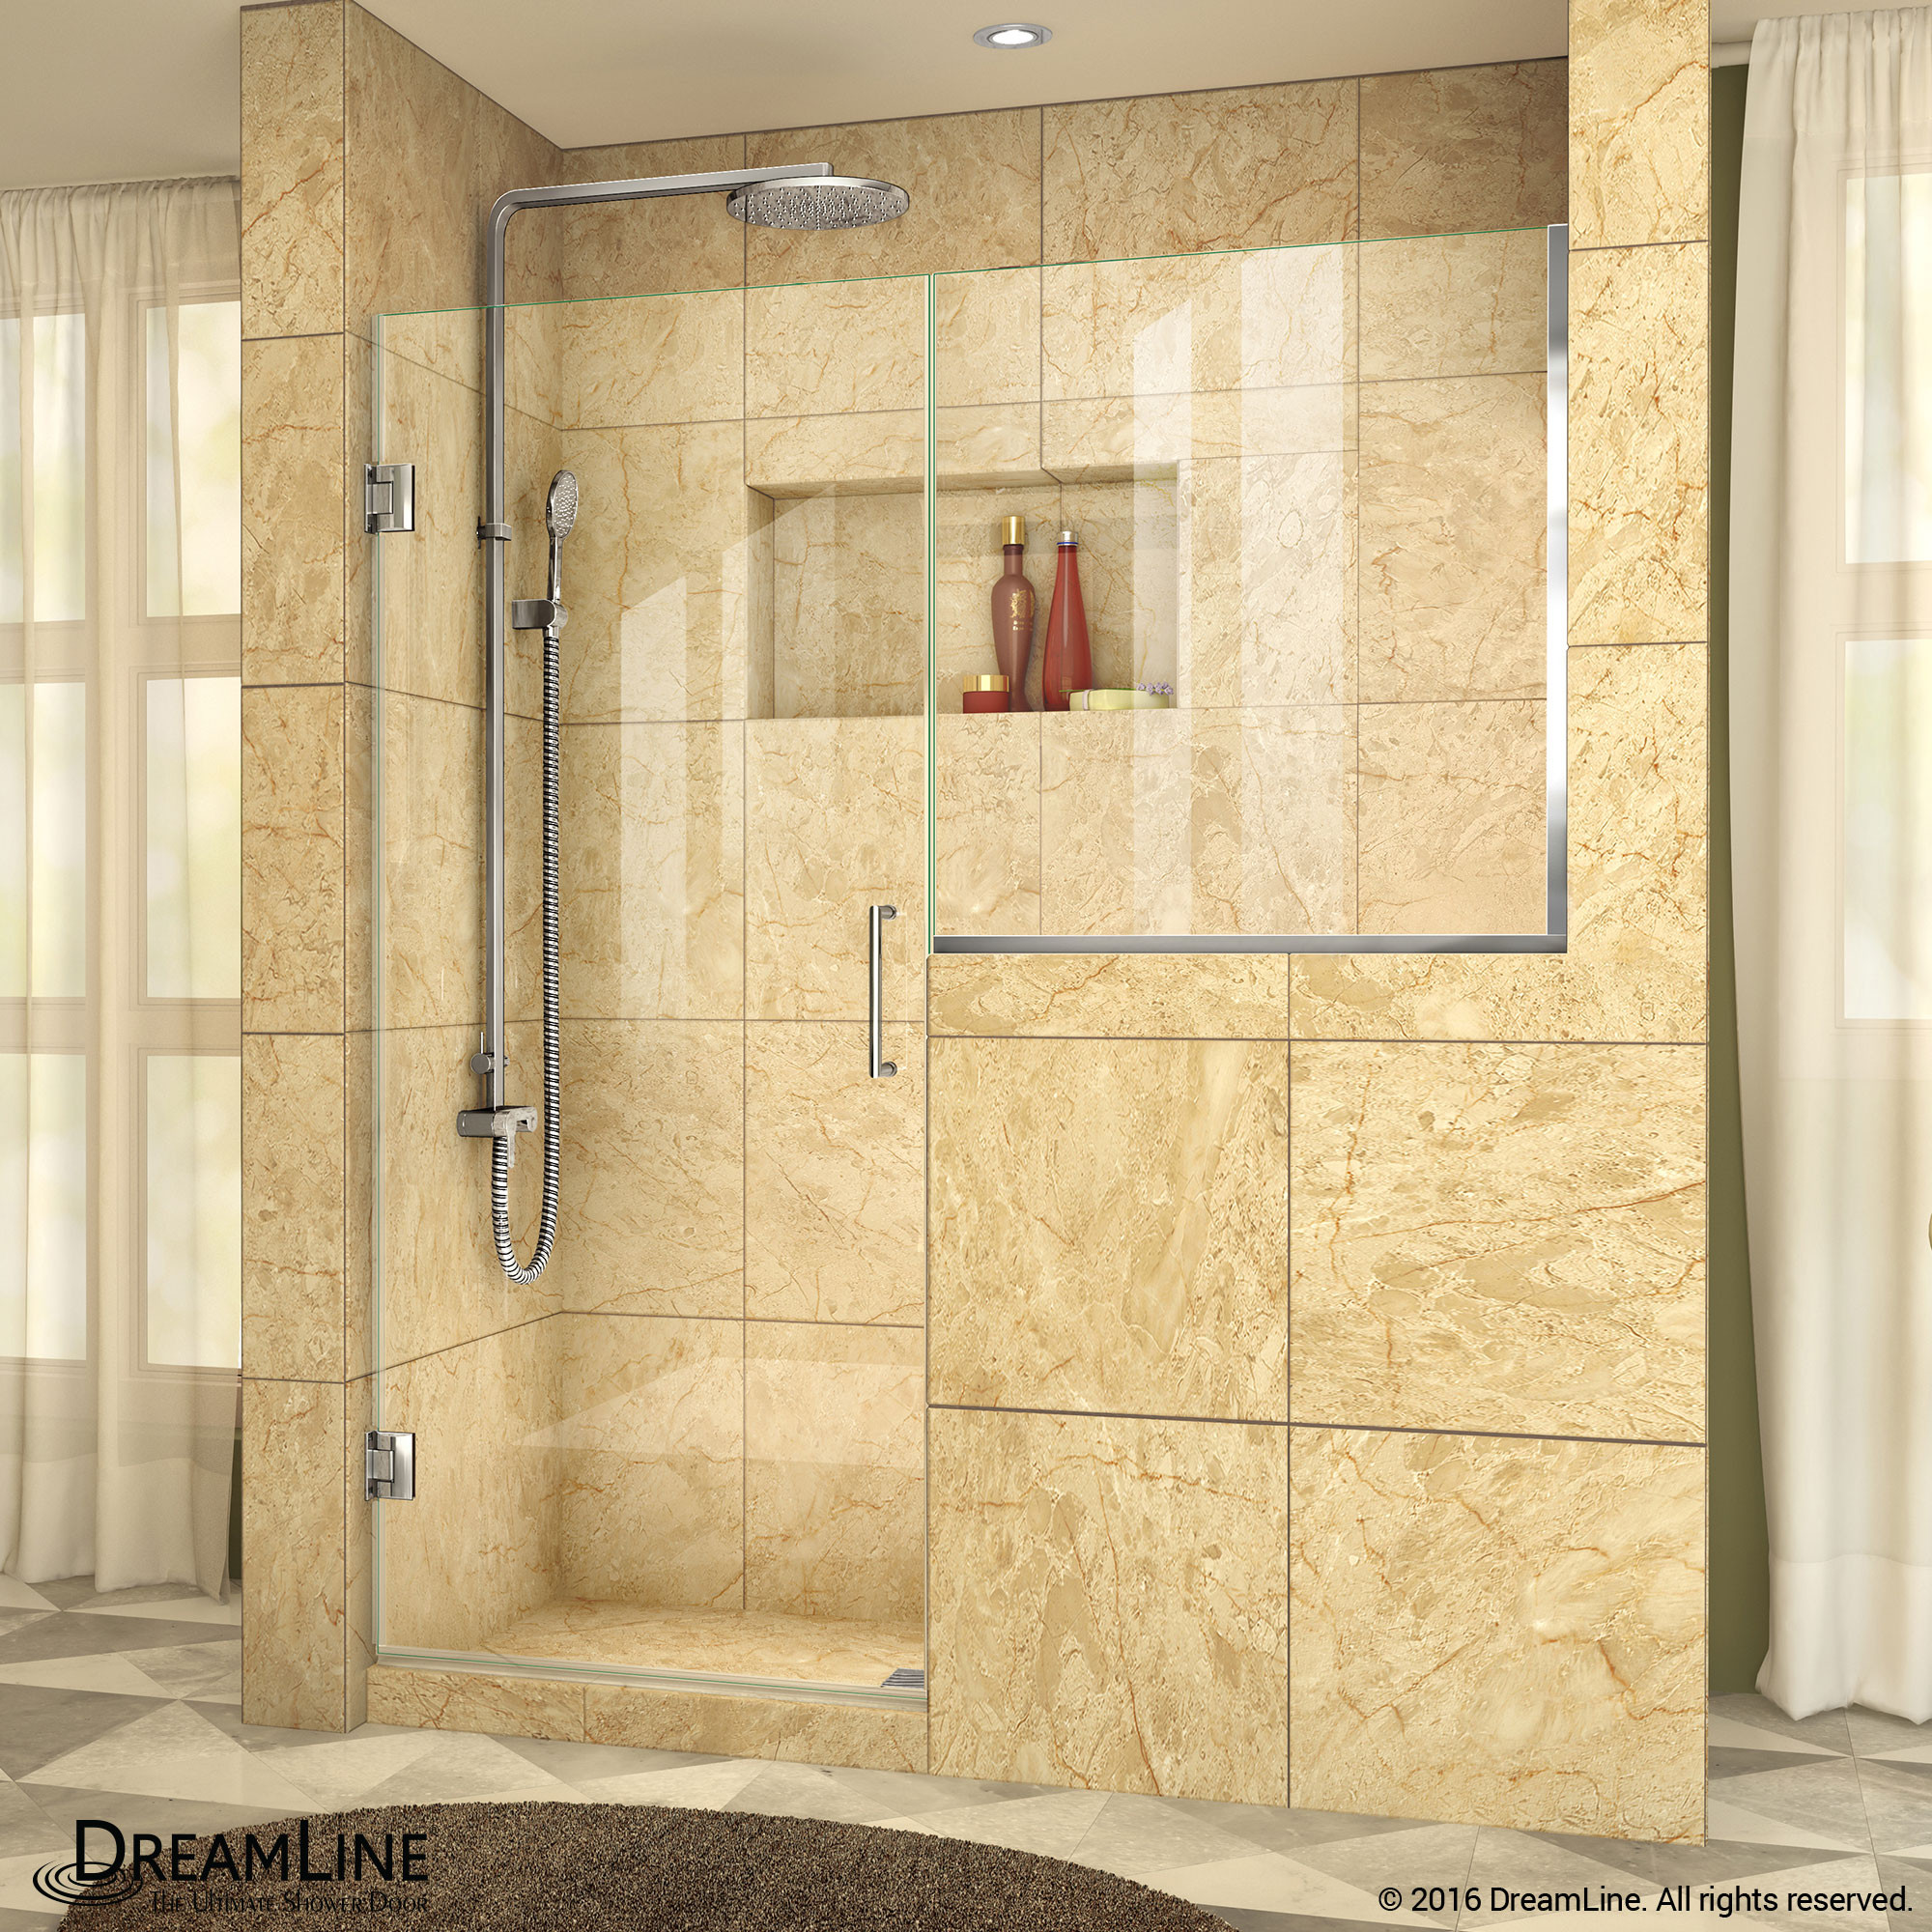 DreamLine SHDR-24283034-01 Unidoor Plus 58 - 58 1/2 in. W x 72 in. H Hinged Shower Door in Chrome